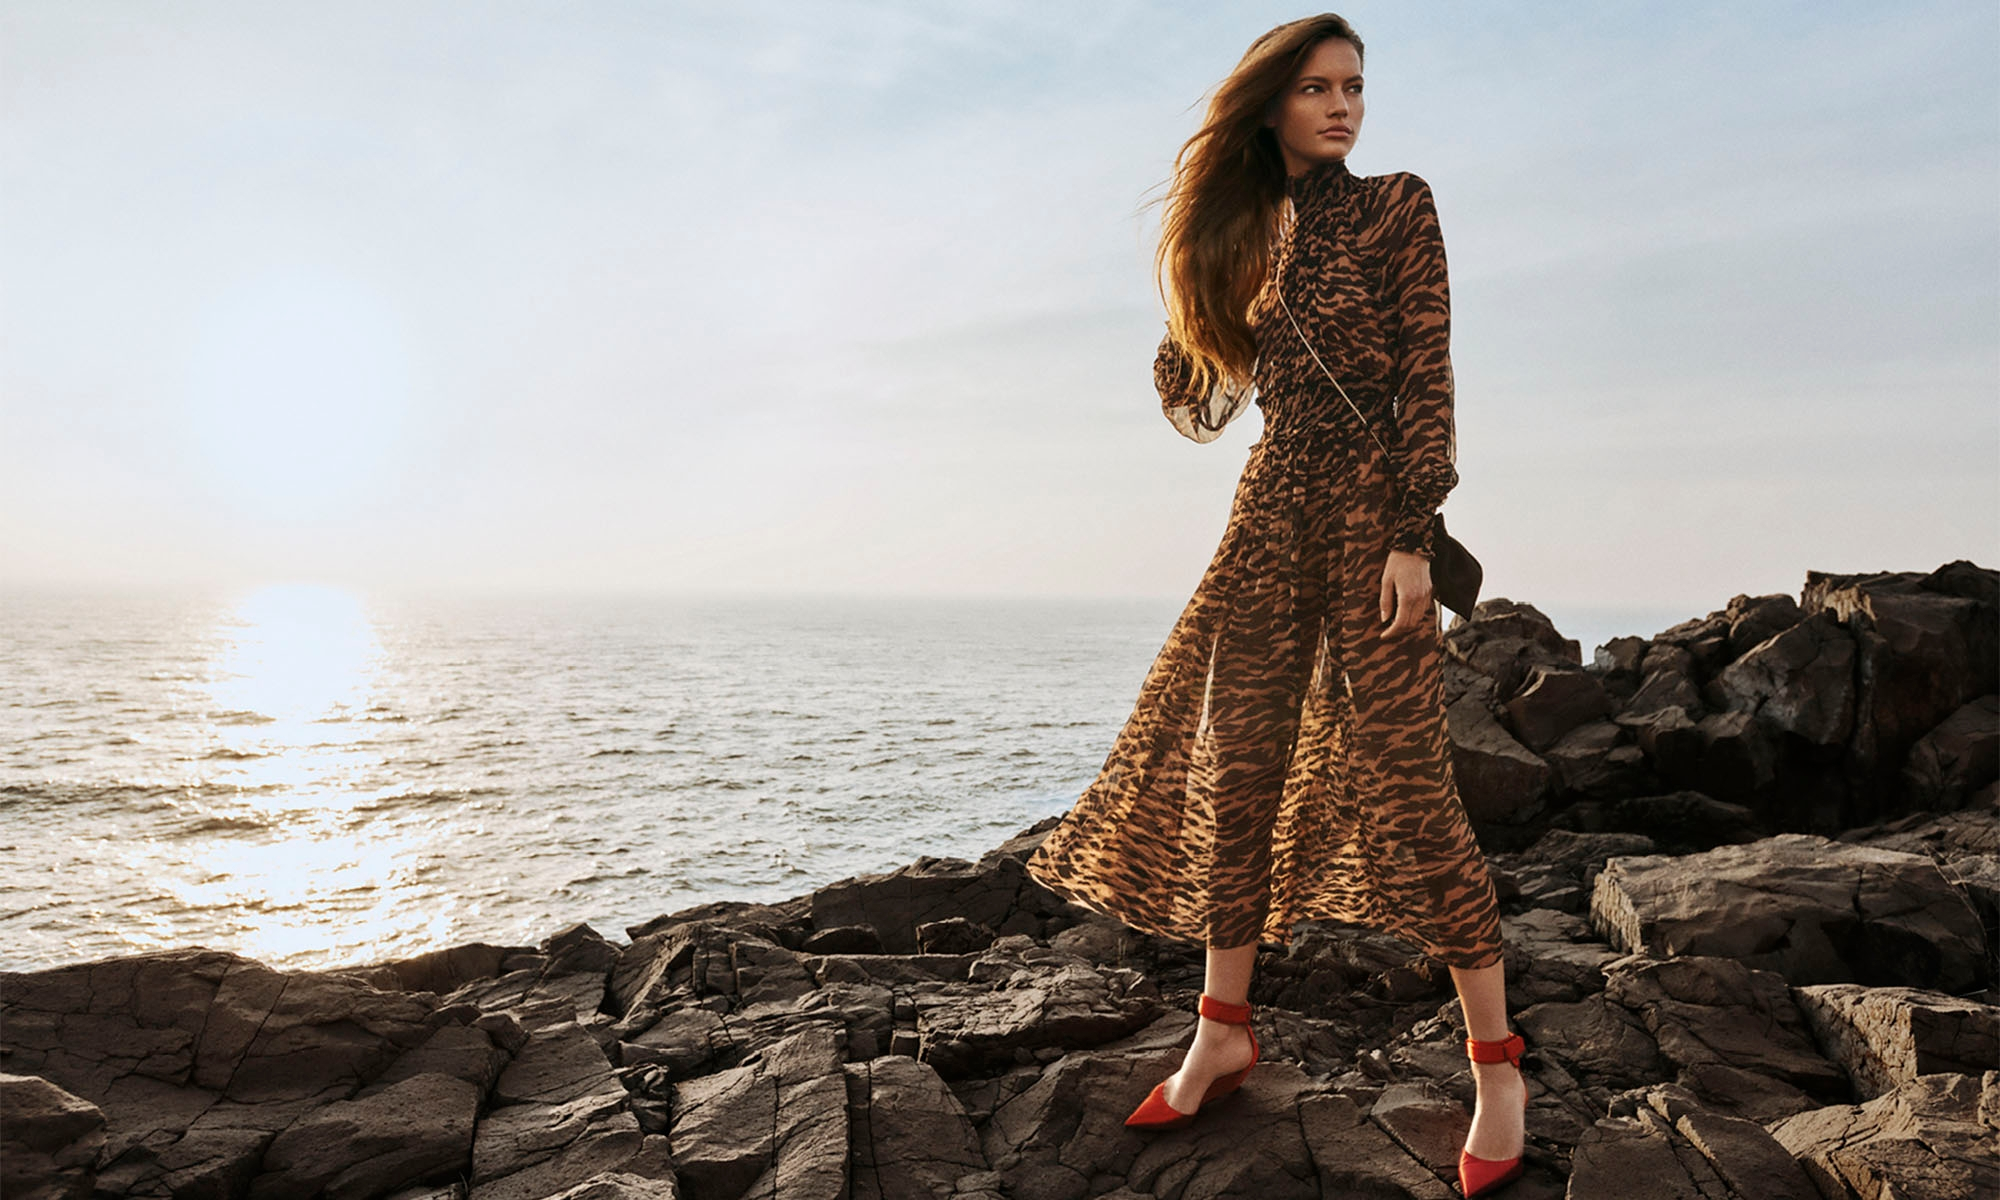 WOMAN STANDING ON THE ROCKS BY THE OCEAN WEARING 8125DWAV Wavelength Shirred Midi, Sumatran Stripe, 3143S20 Mini Pouch, Black, 3104S20 Satin Surf Wedge, Ruby